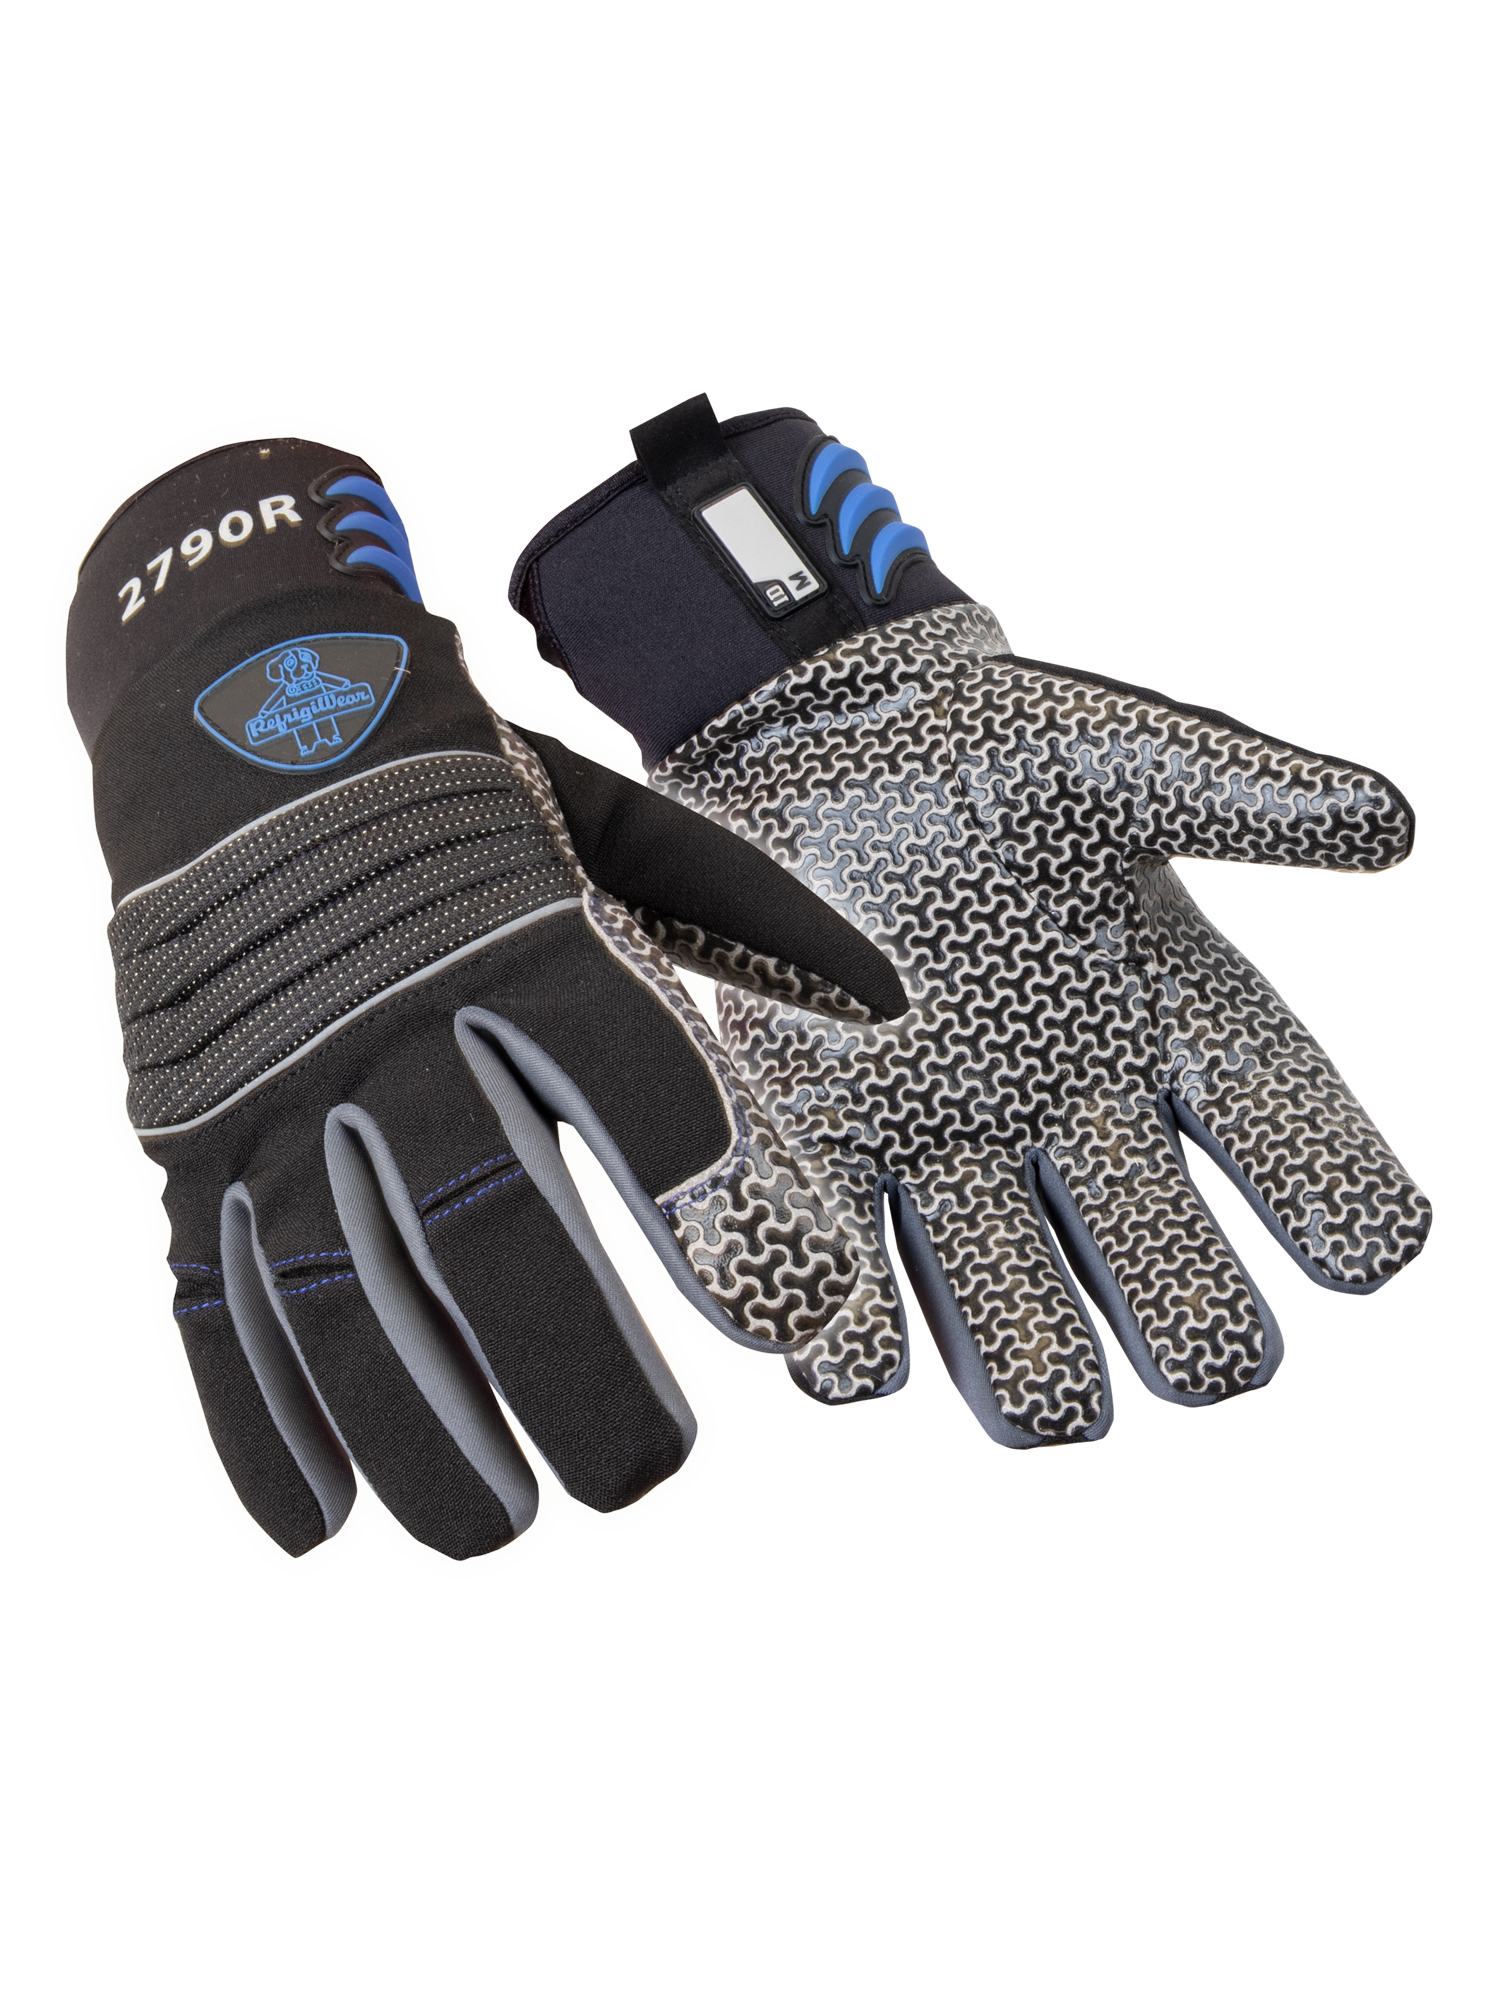 Coating None, 3 Pairs Max 5.0 Thermal Insulated Sport Utility Gloves 2XL Black Lining Thinsulate